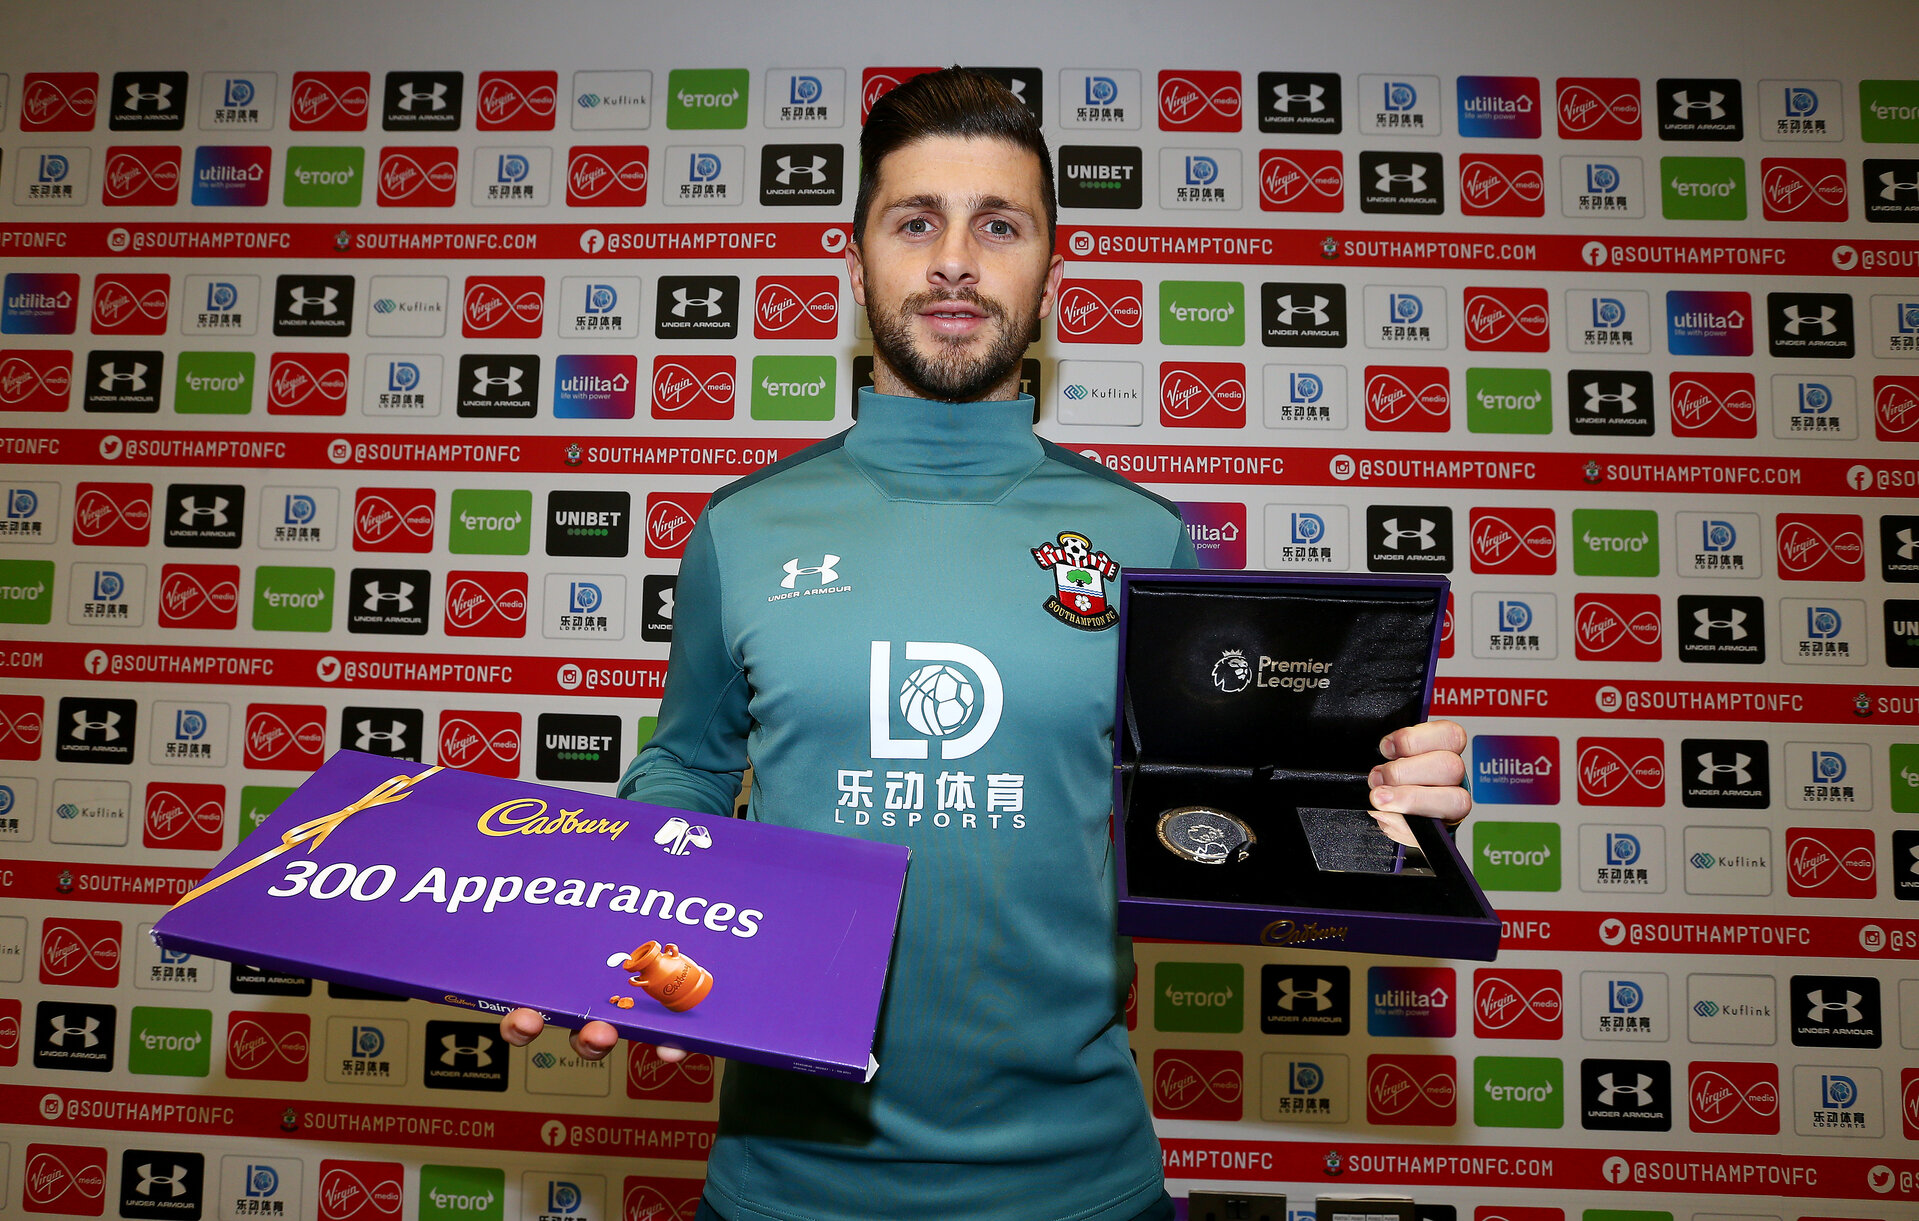 SOUTHAMPTON, ENGLAND - JANUARY 23: Shane Long of Southampton receives an award to make 300 Premier League appearances, pictured at the Staplewood Campus on January 23, 2020 in Southampton, England. (Photo by Matt Watson/Southampton FC via Getty Images)